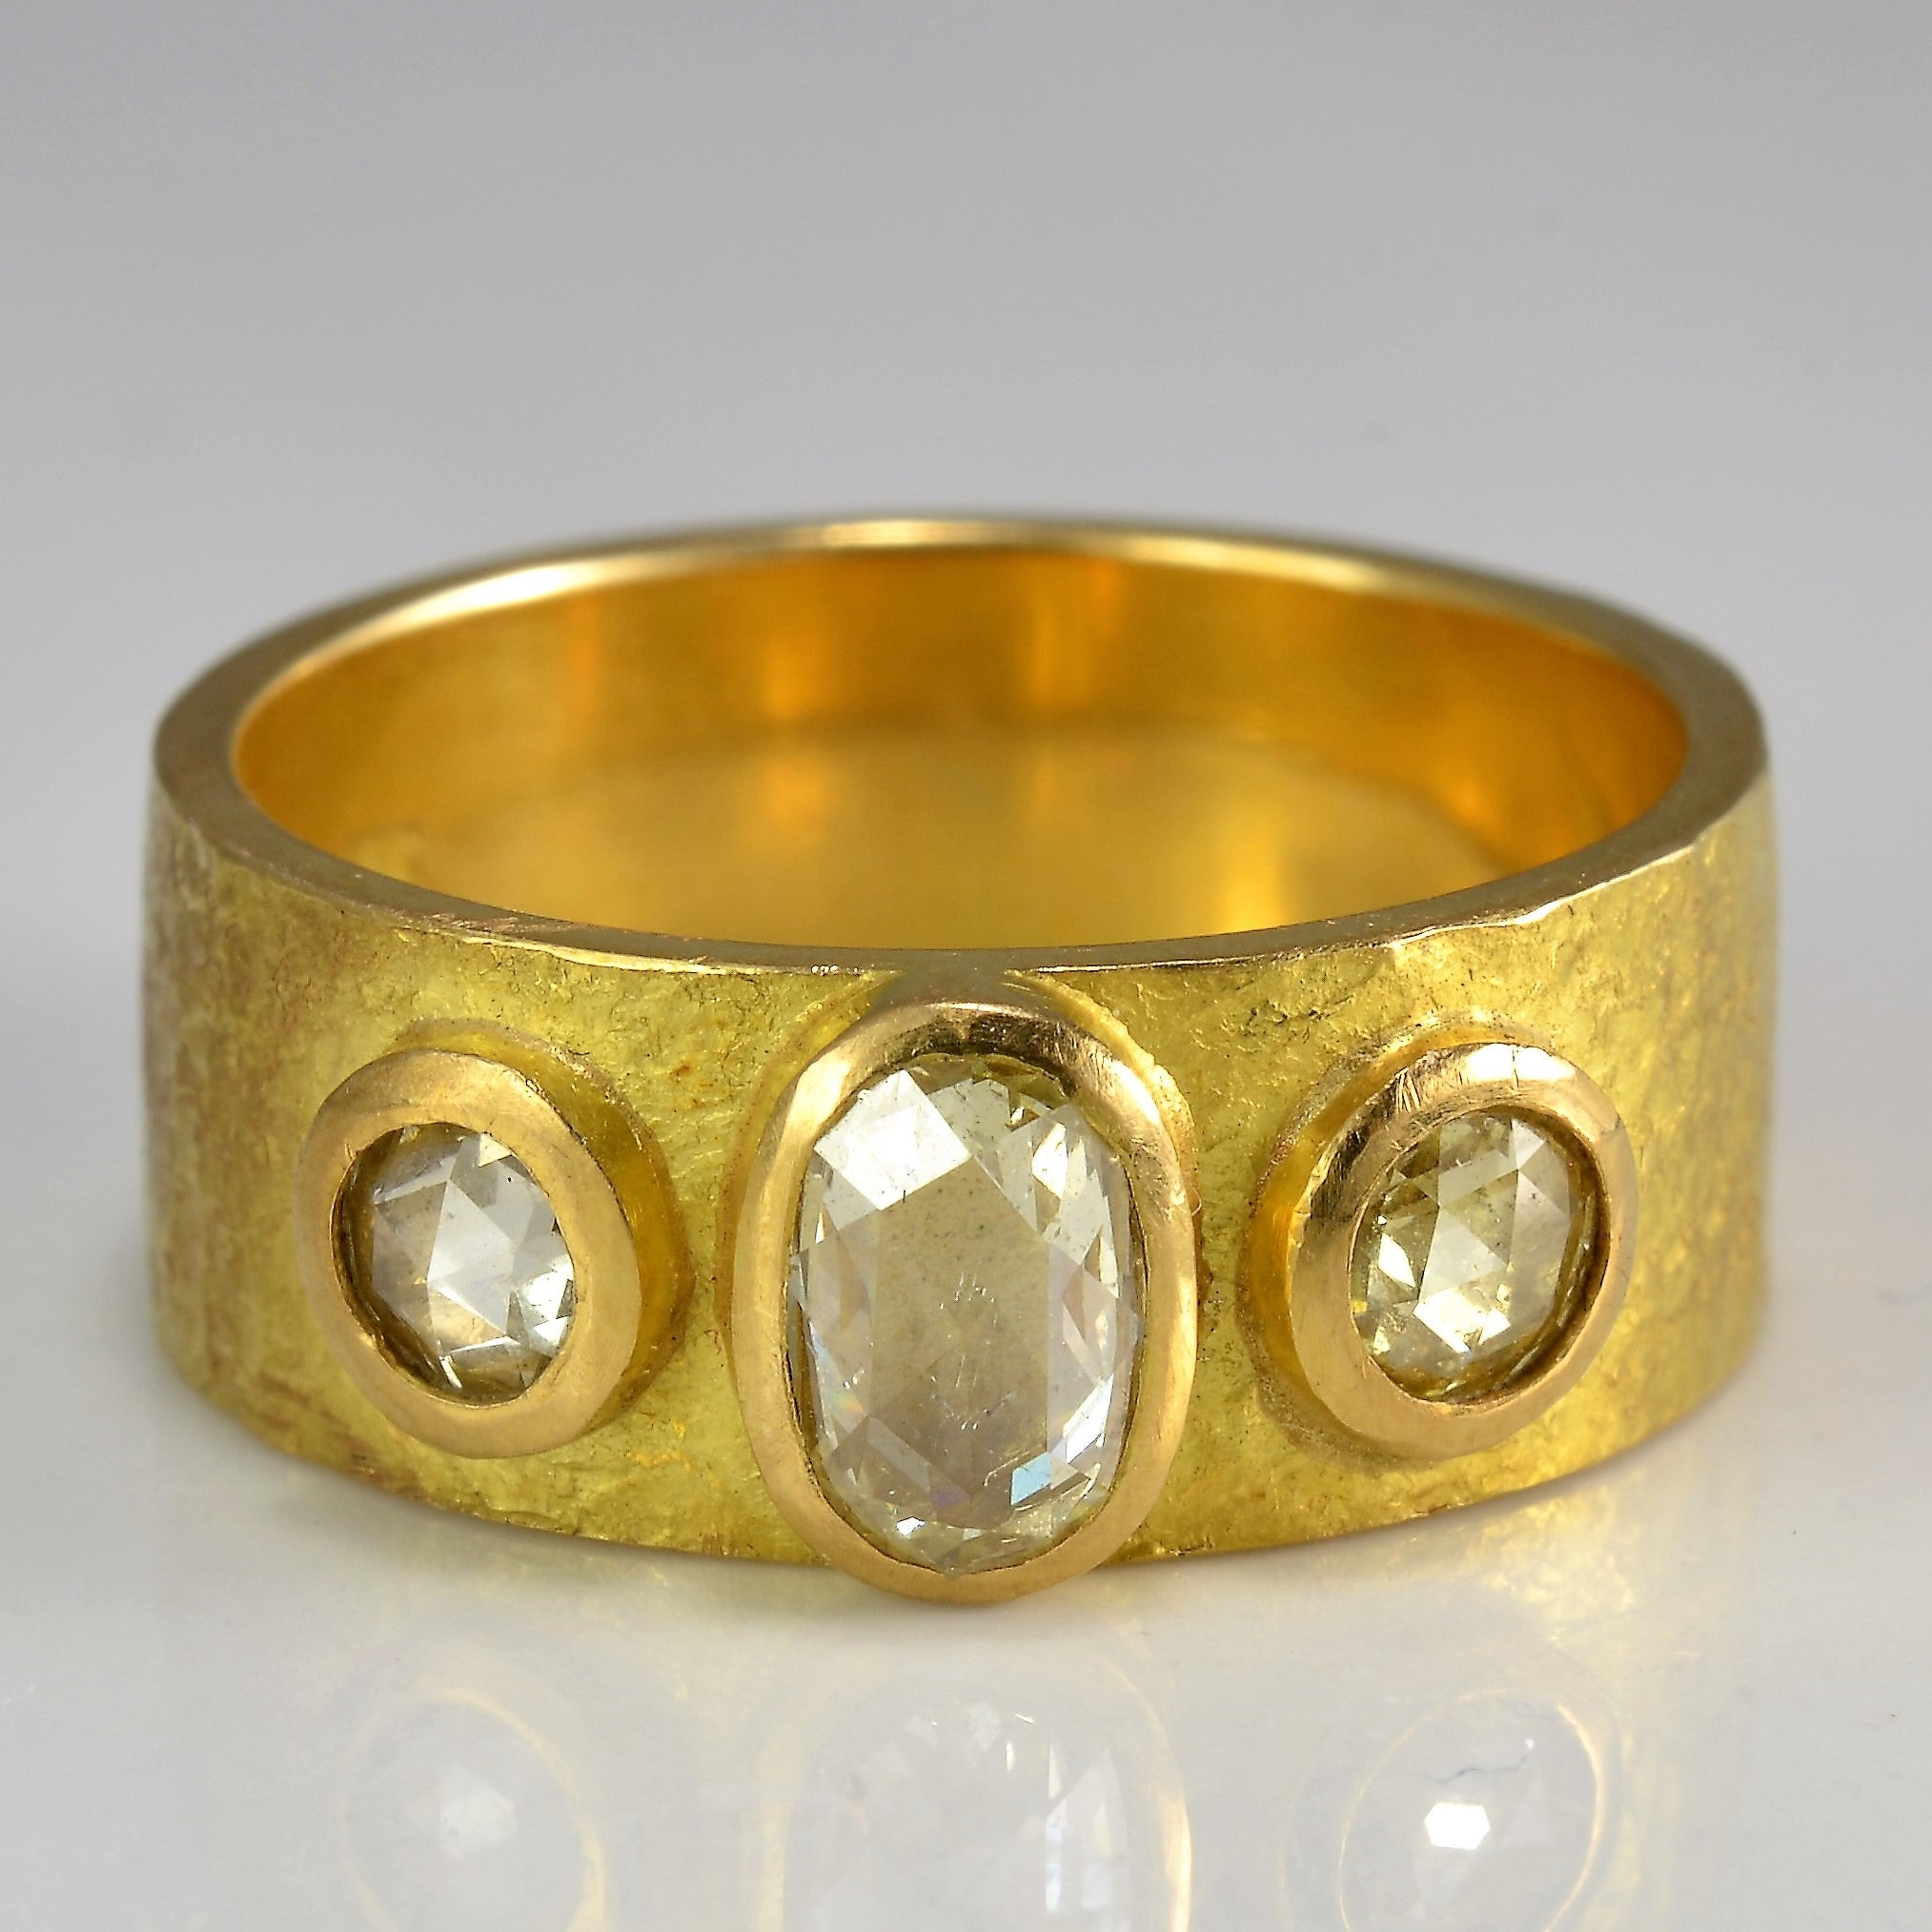 Vintage Three Stone Rose Cut Diamond Ring | 0.65 ctw, SZ 7.5 |